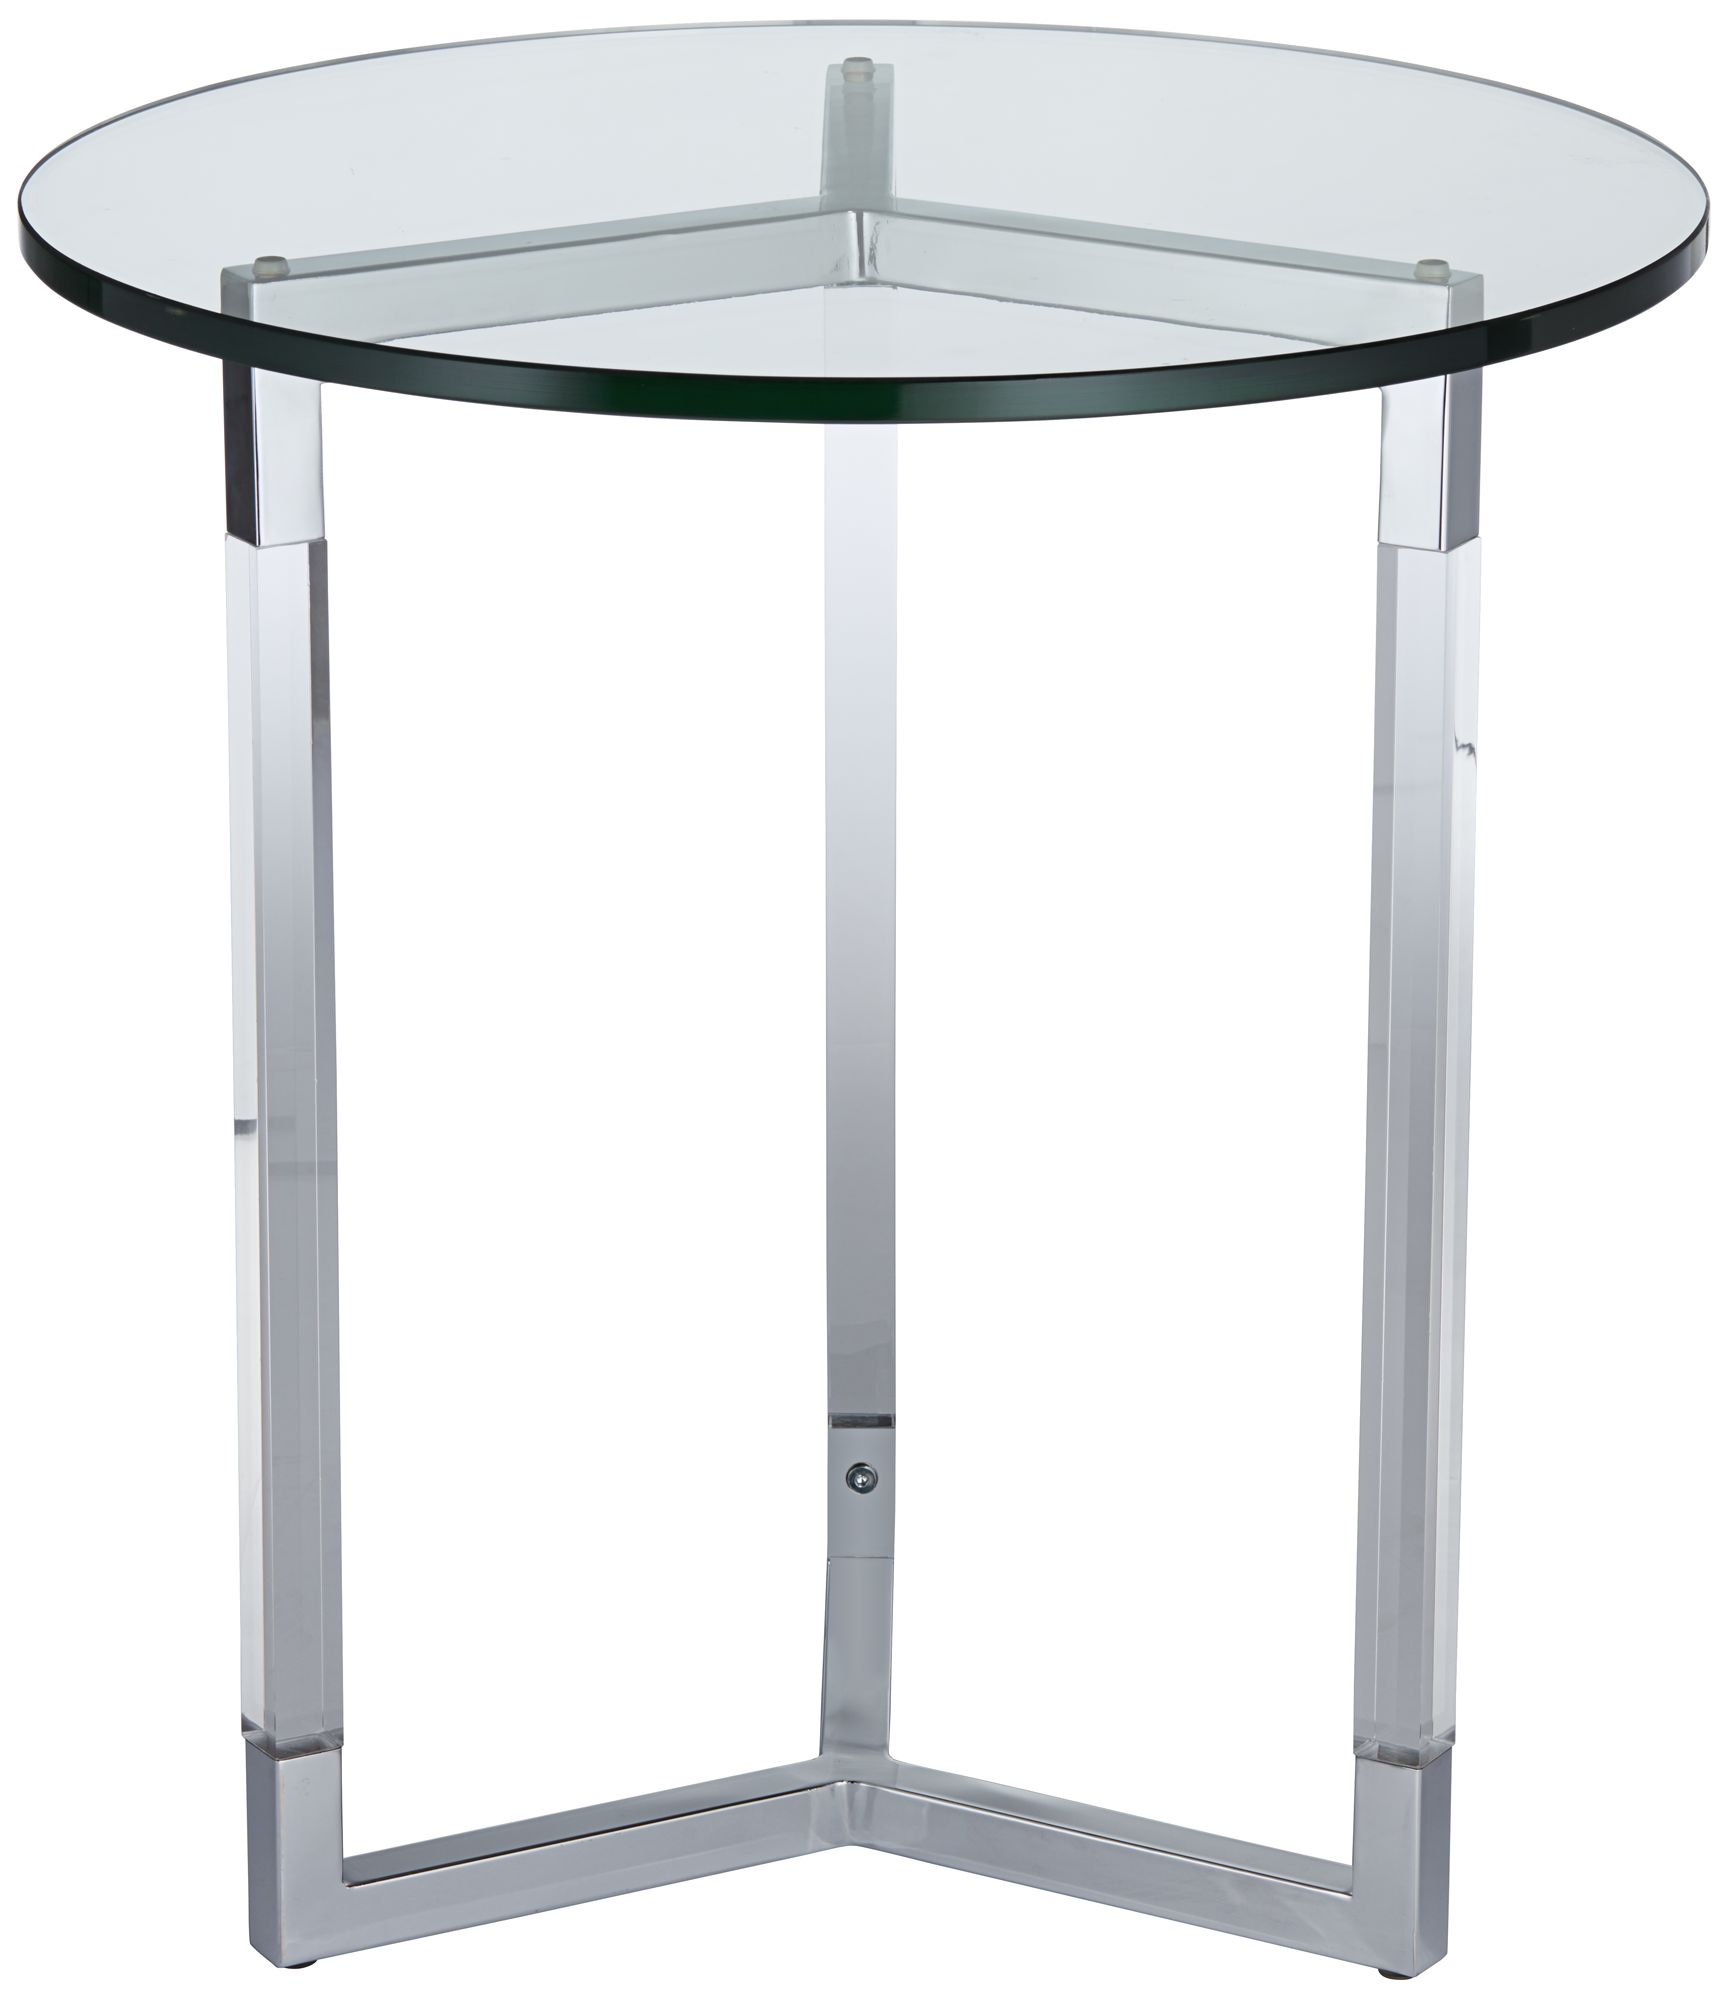 Linda Acrylic And Tempered Glass Round Accent Table   #32X13 | Lamps Plus